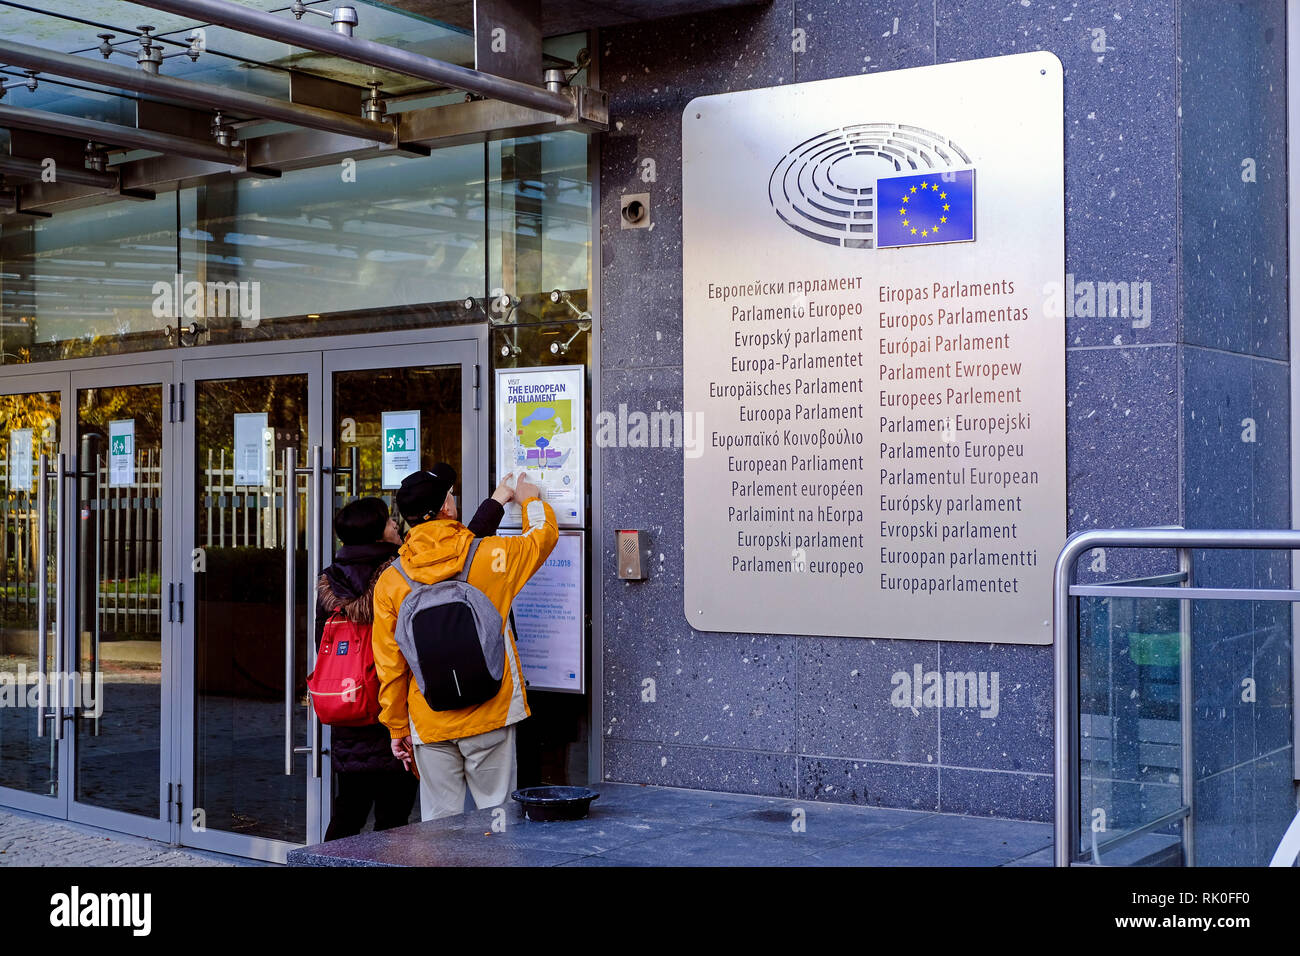 Brussels, Belgium - two people at the entrance to the European Parliament in Brussels, Brüssel, Belgien - zwei Personen am Besuchereingang des Europae - Stock Image